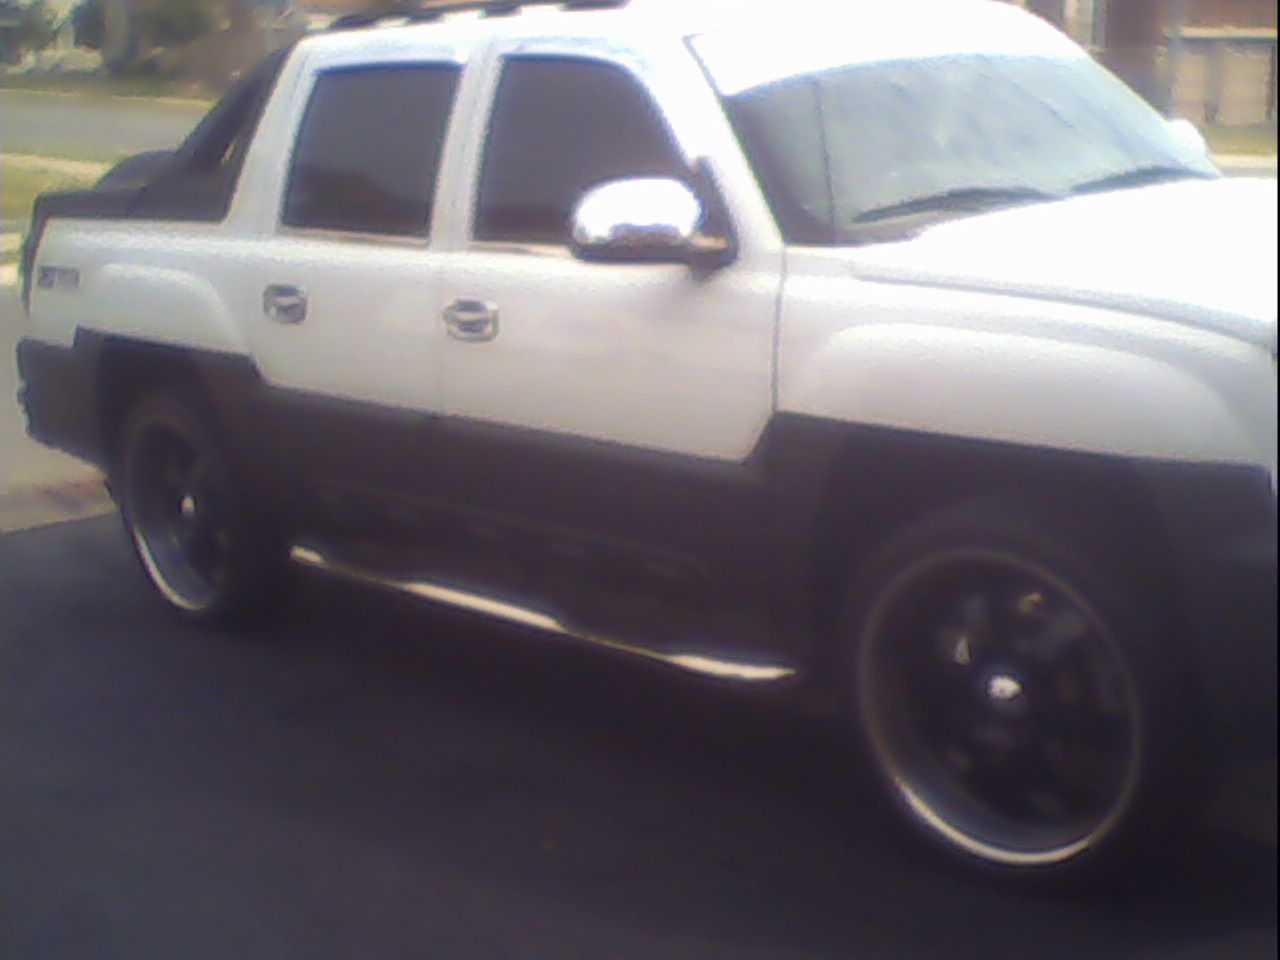 Custom Chevy Avalanche Interior 2003 Chevrolet Custom Chevy as well Chevrolet Classic Argentina likewise Nerf Bar Step Pads Replacement together with Chevy Chase Roof Racks Silverado likewise 2003 Chevy Avalanche. on 2003 chevy avalanche custom